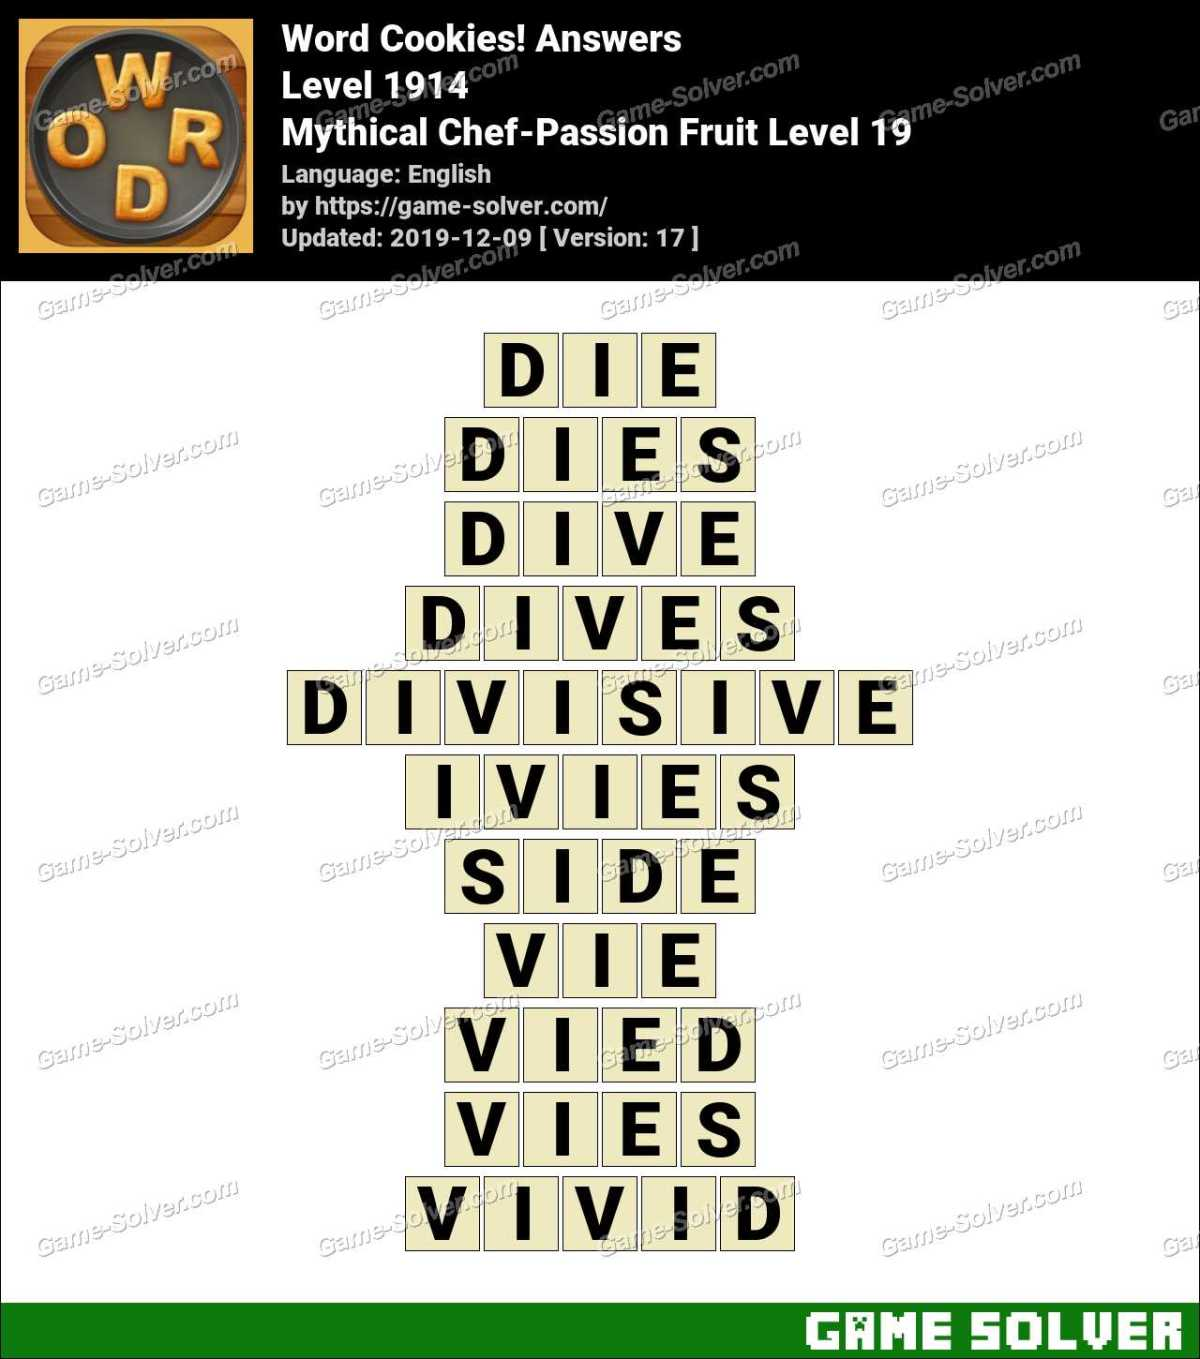 Word Cookies Mythical Chef-Passion Fruit Level 19 Answers